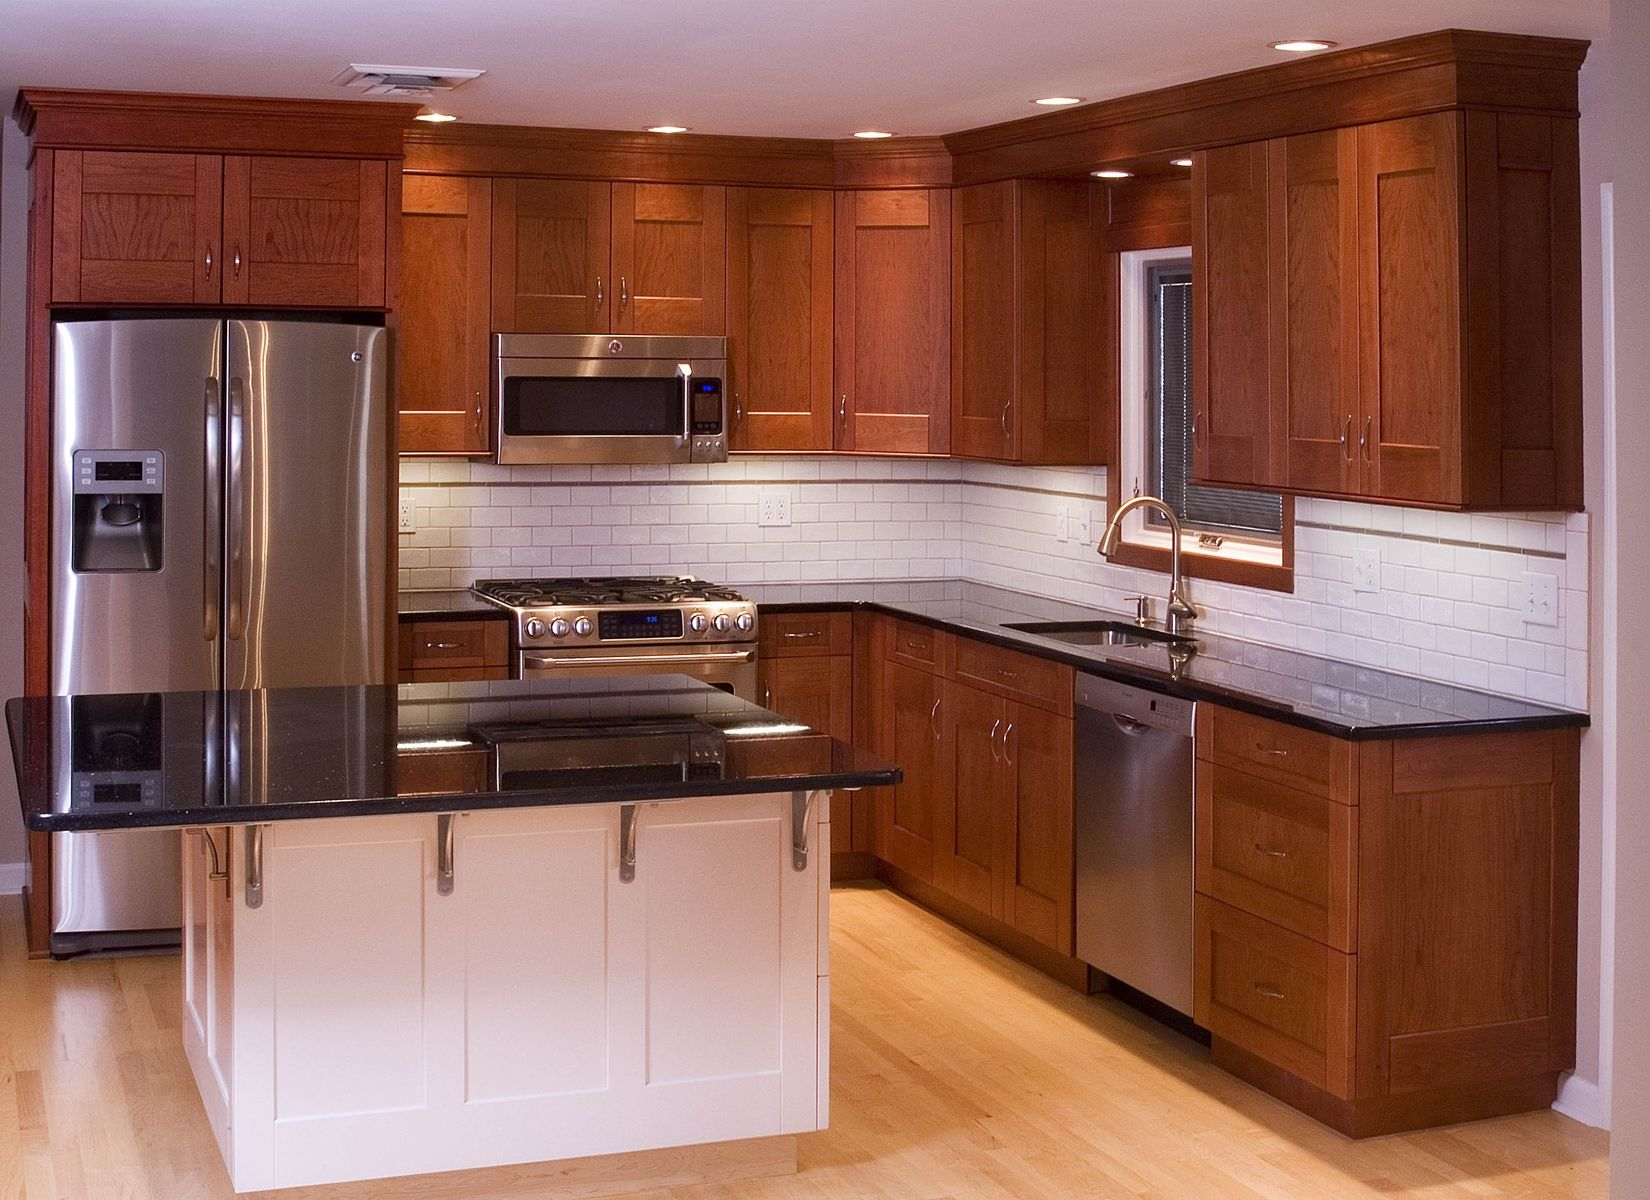 Hand made cherry kitchen cabinets by neal barrett for Model kitchens with white cabinets